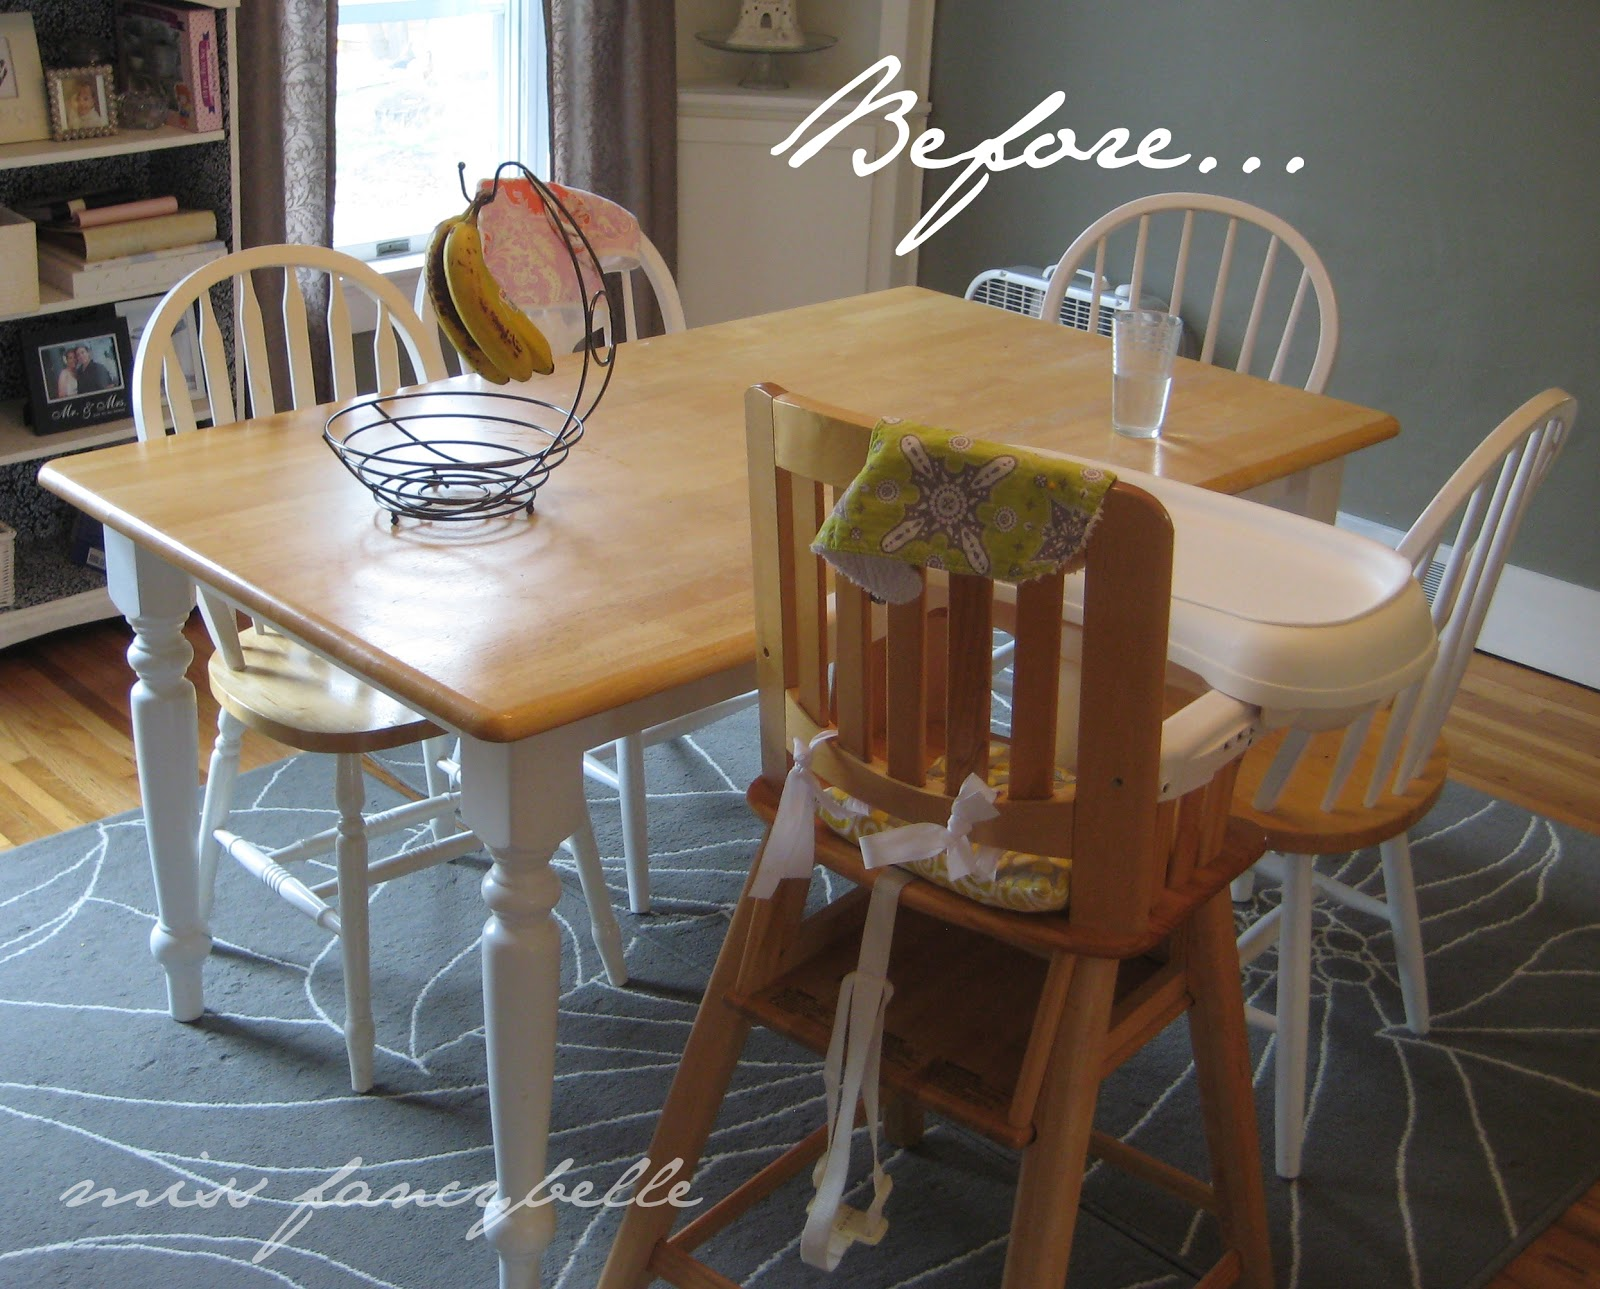 Kitchen Table Makeover Miss Fancybelle Our Dining Table Makeover